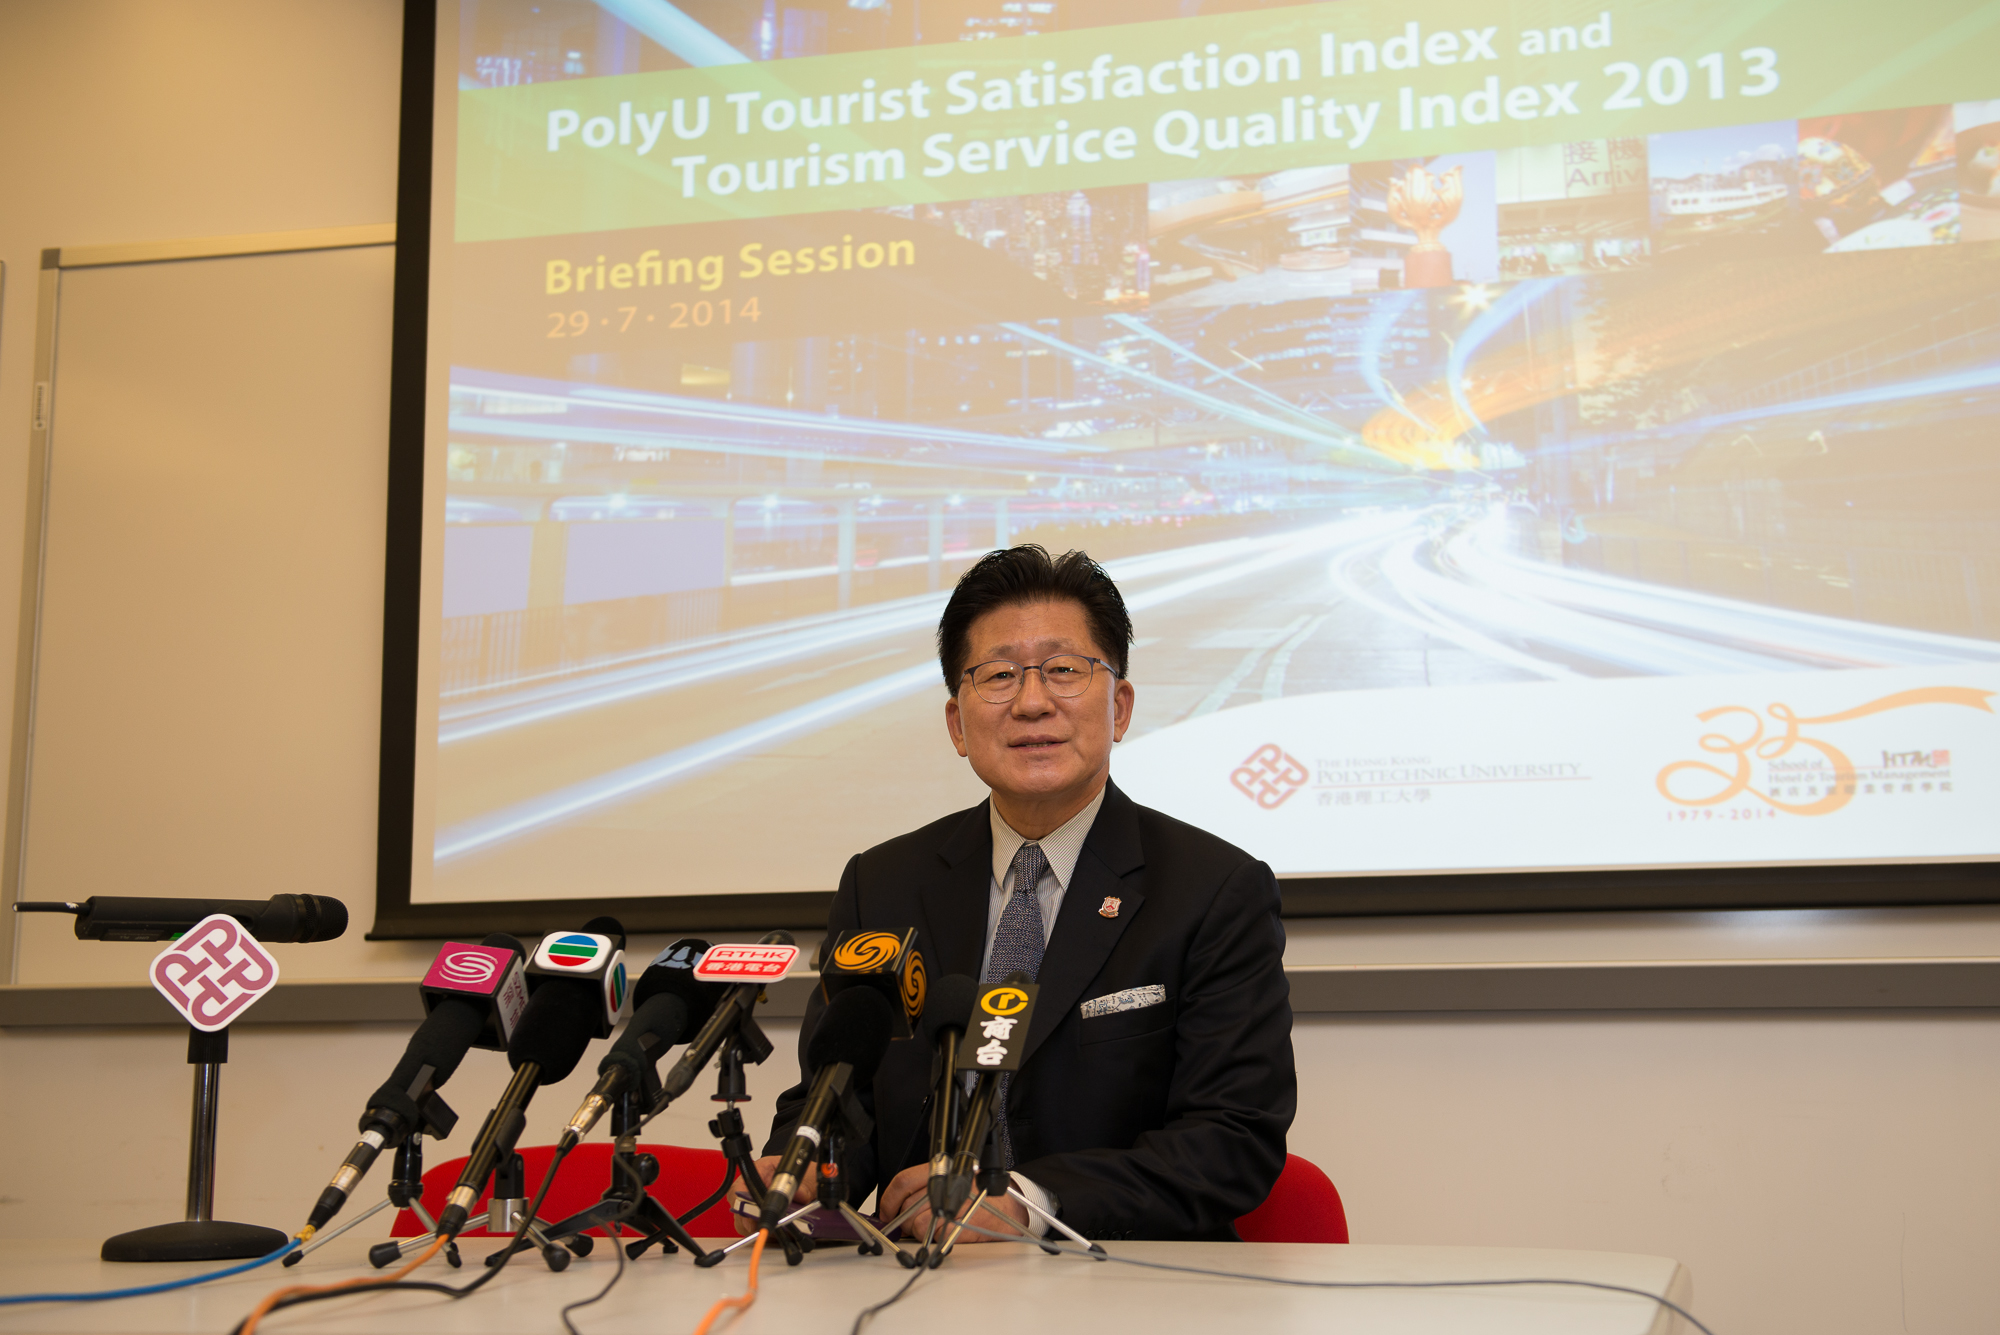 Professor Kaye Chon, SHTM Dean and Principal Investigator of the PolyU TSQI delivered his welcome remarks.